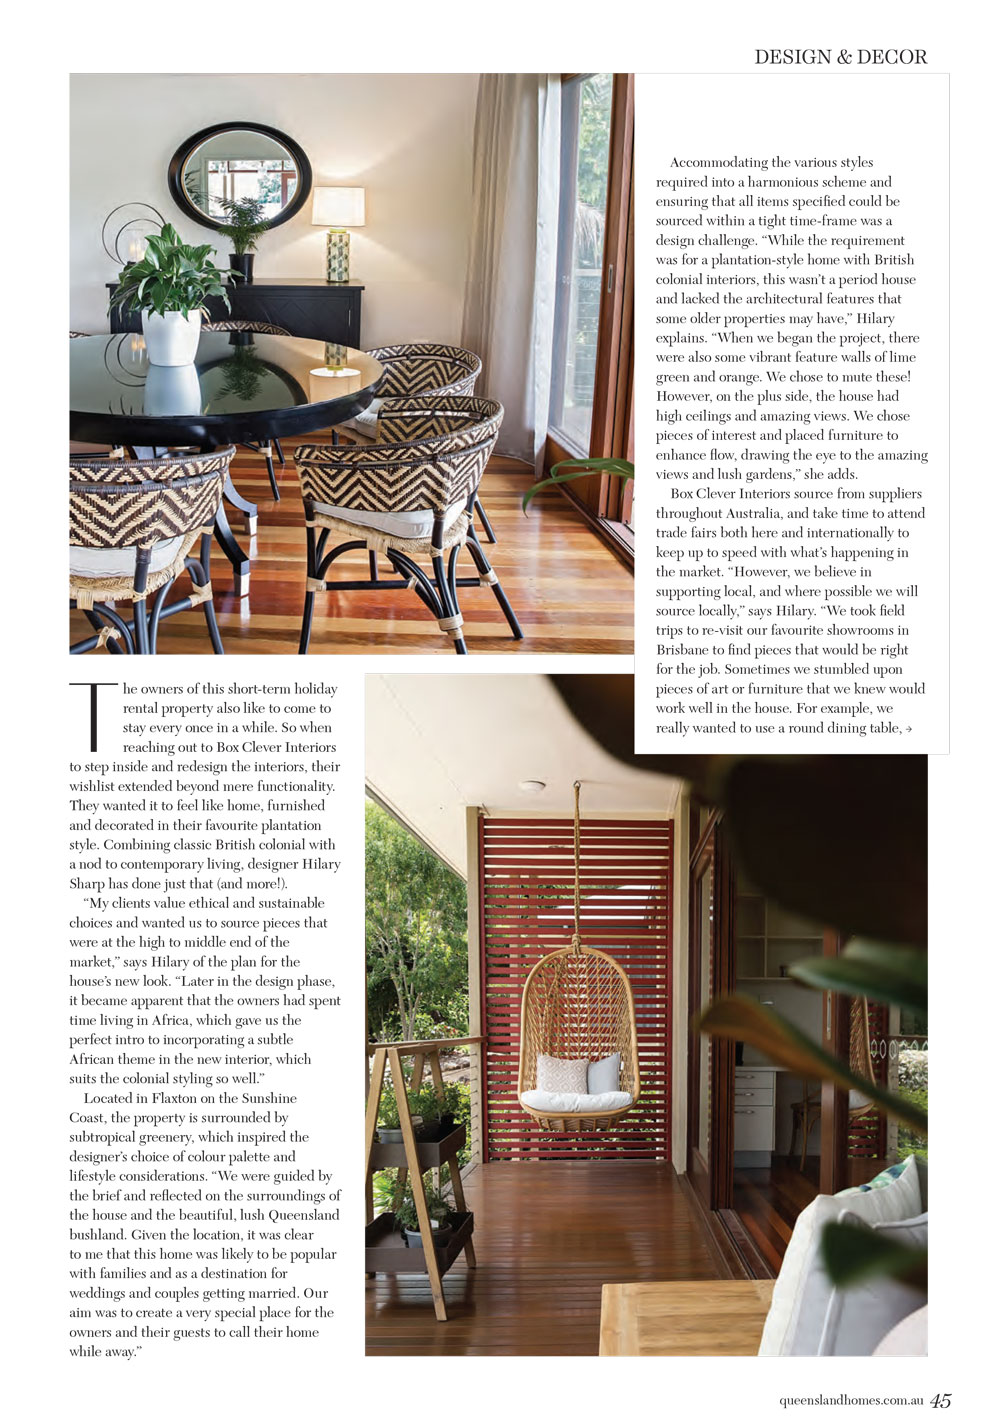 Queensland Homes Box Clever Interiors Article